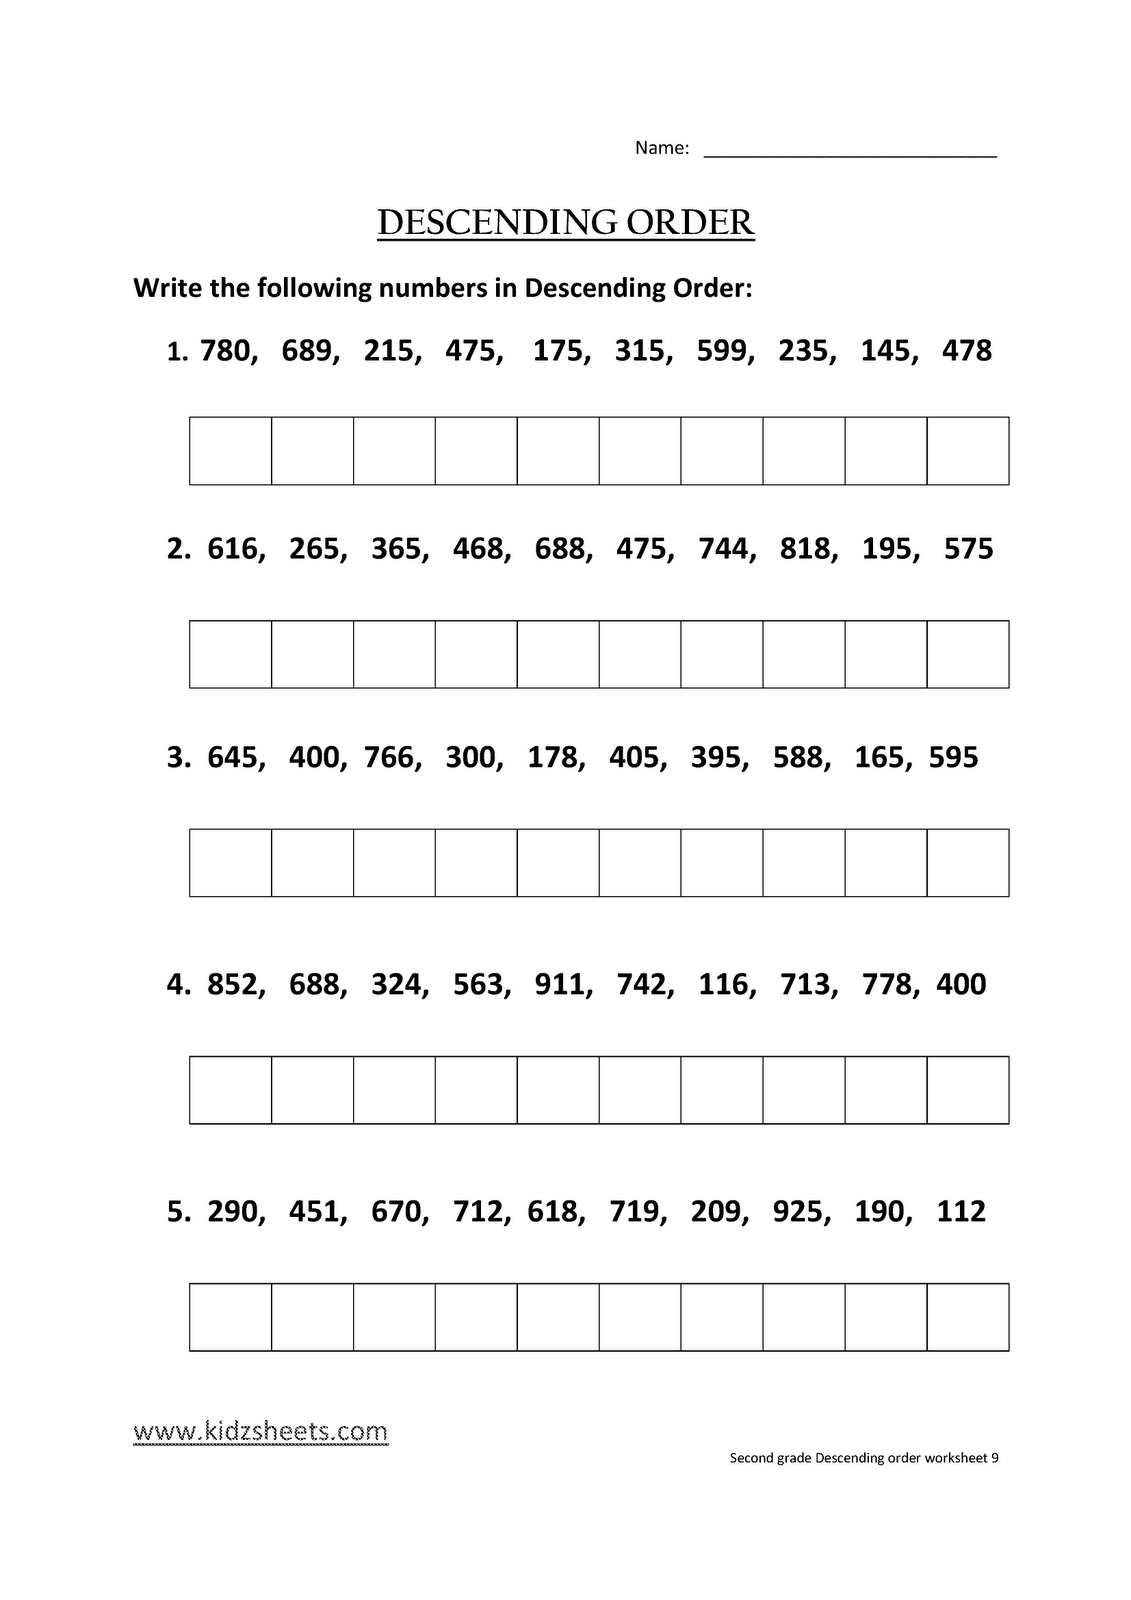 Kidz Worksheets Second Grade Descending Order Worksheet9